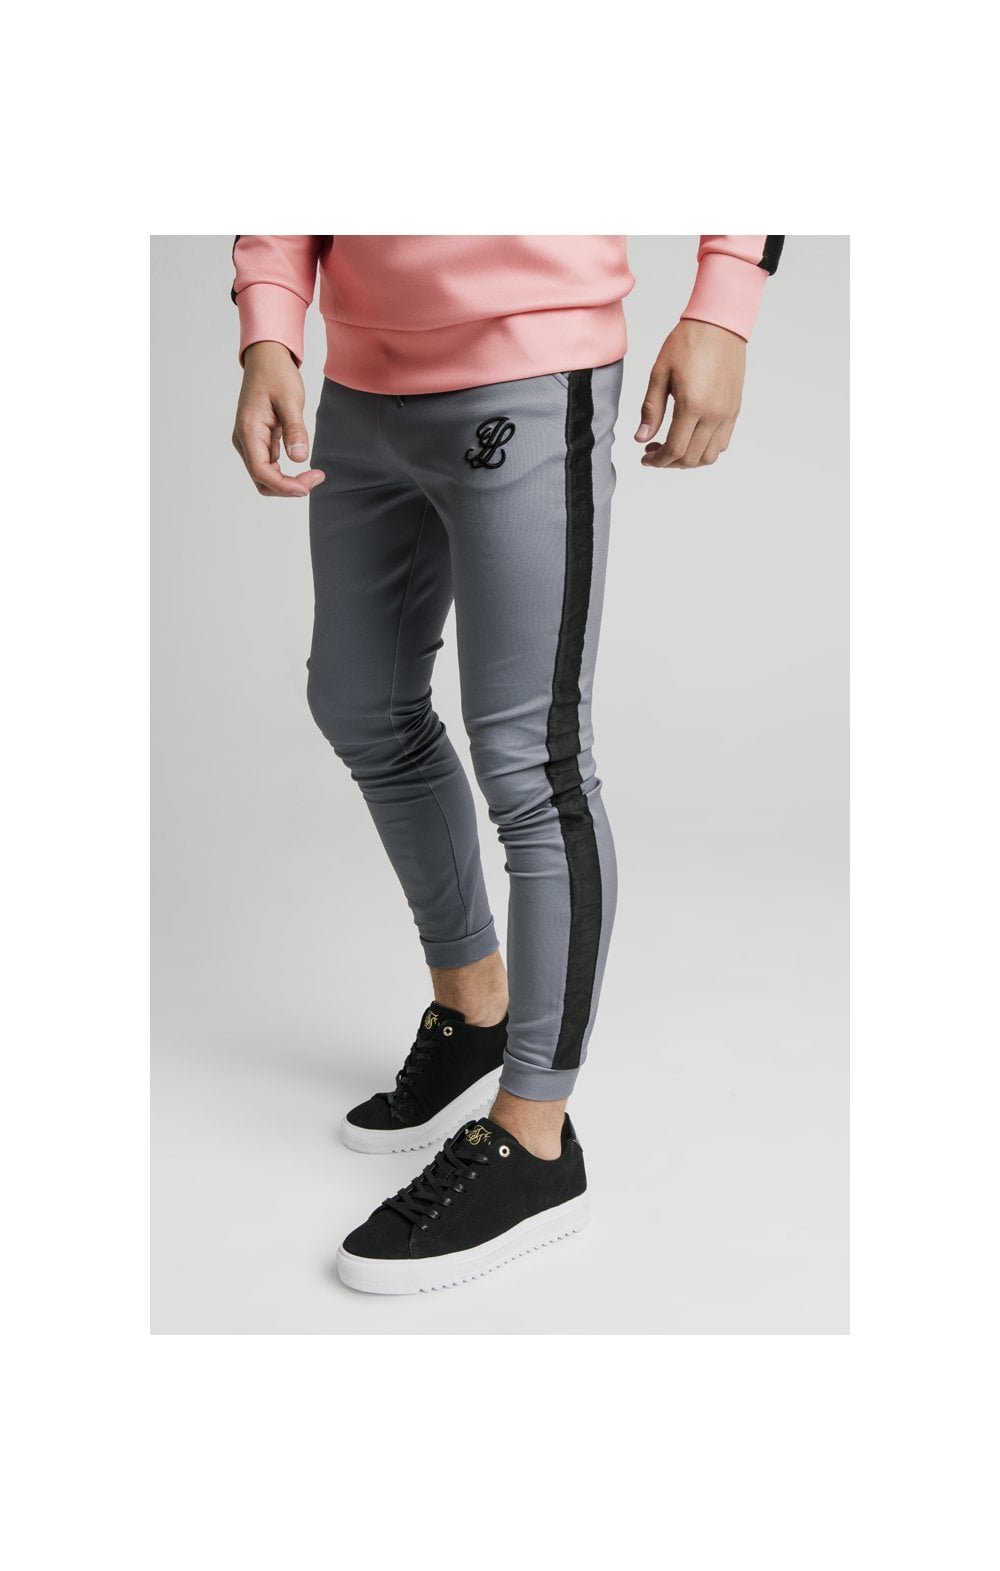 Illusive London Athlete Pants - Grey